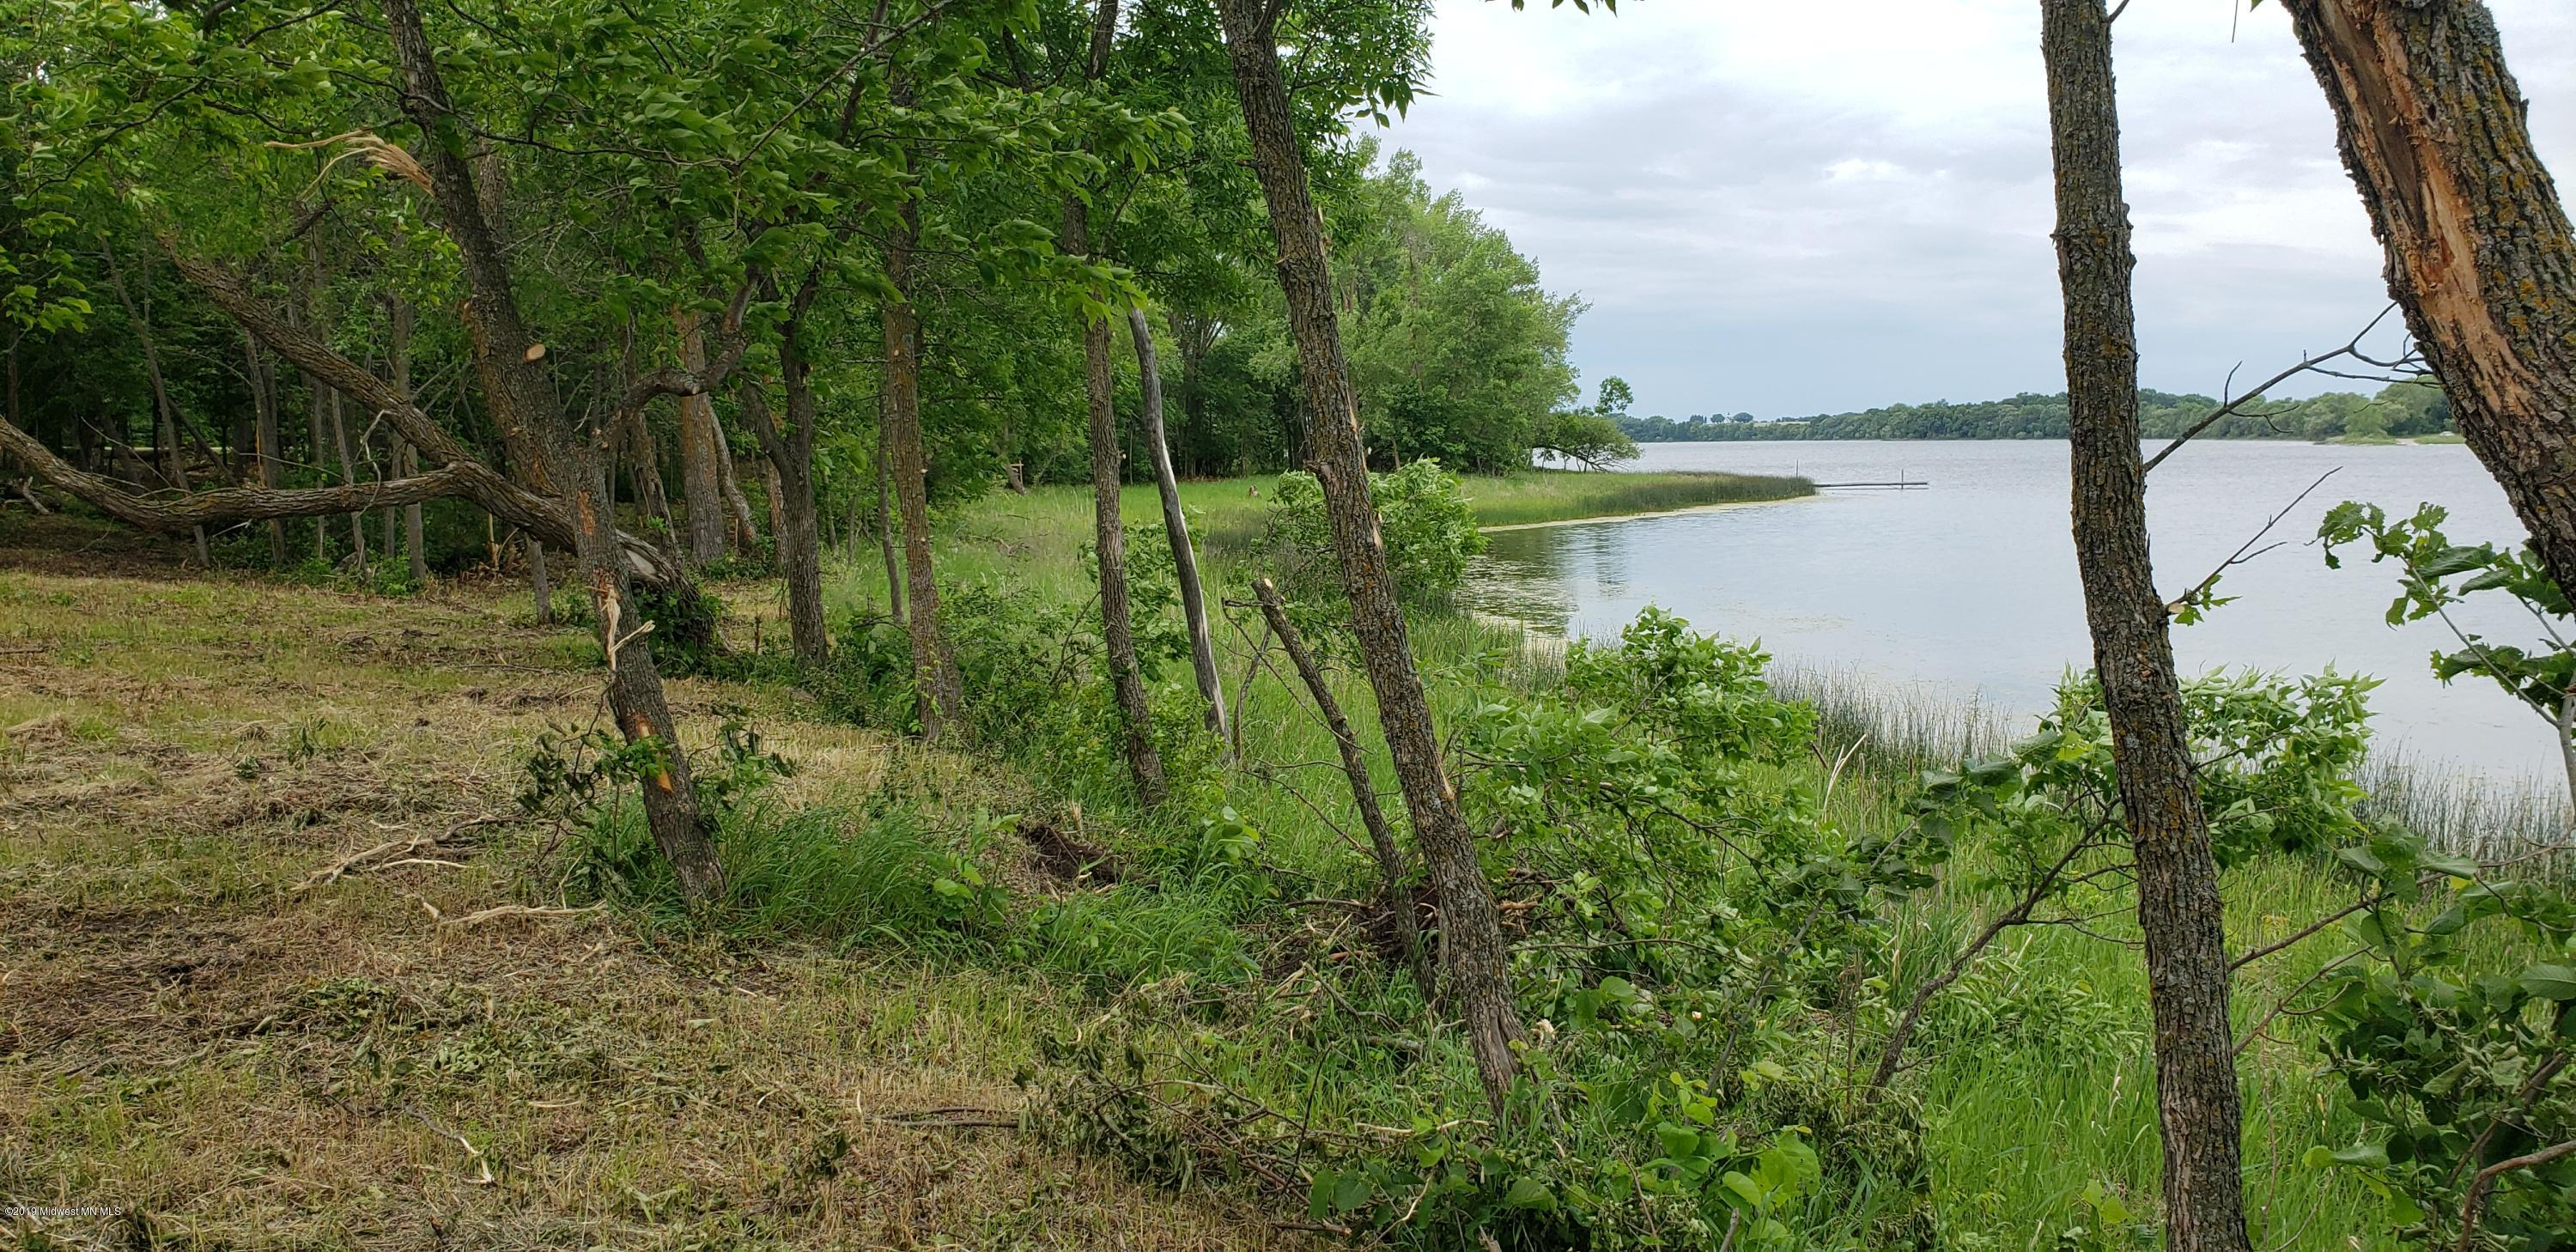 Lot 1 Bluegill Bay Estates - Ashby, MN 56309